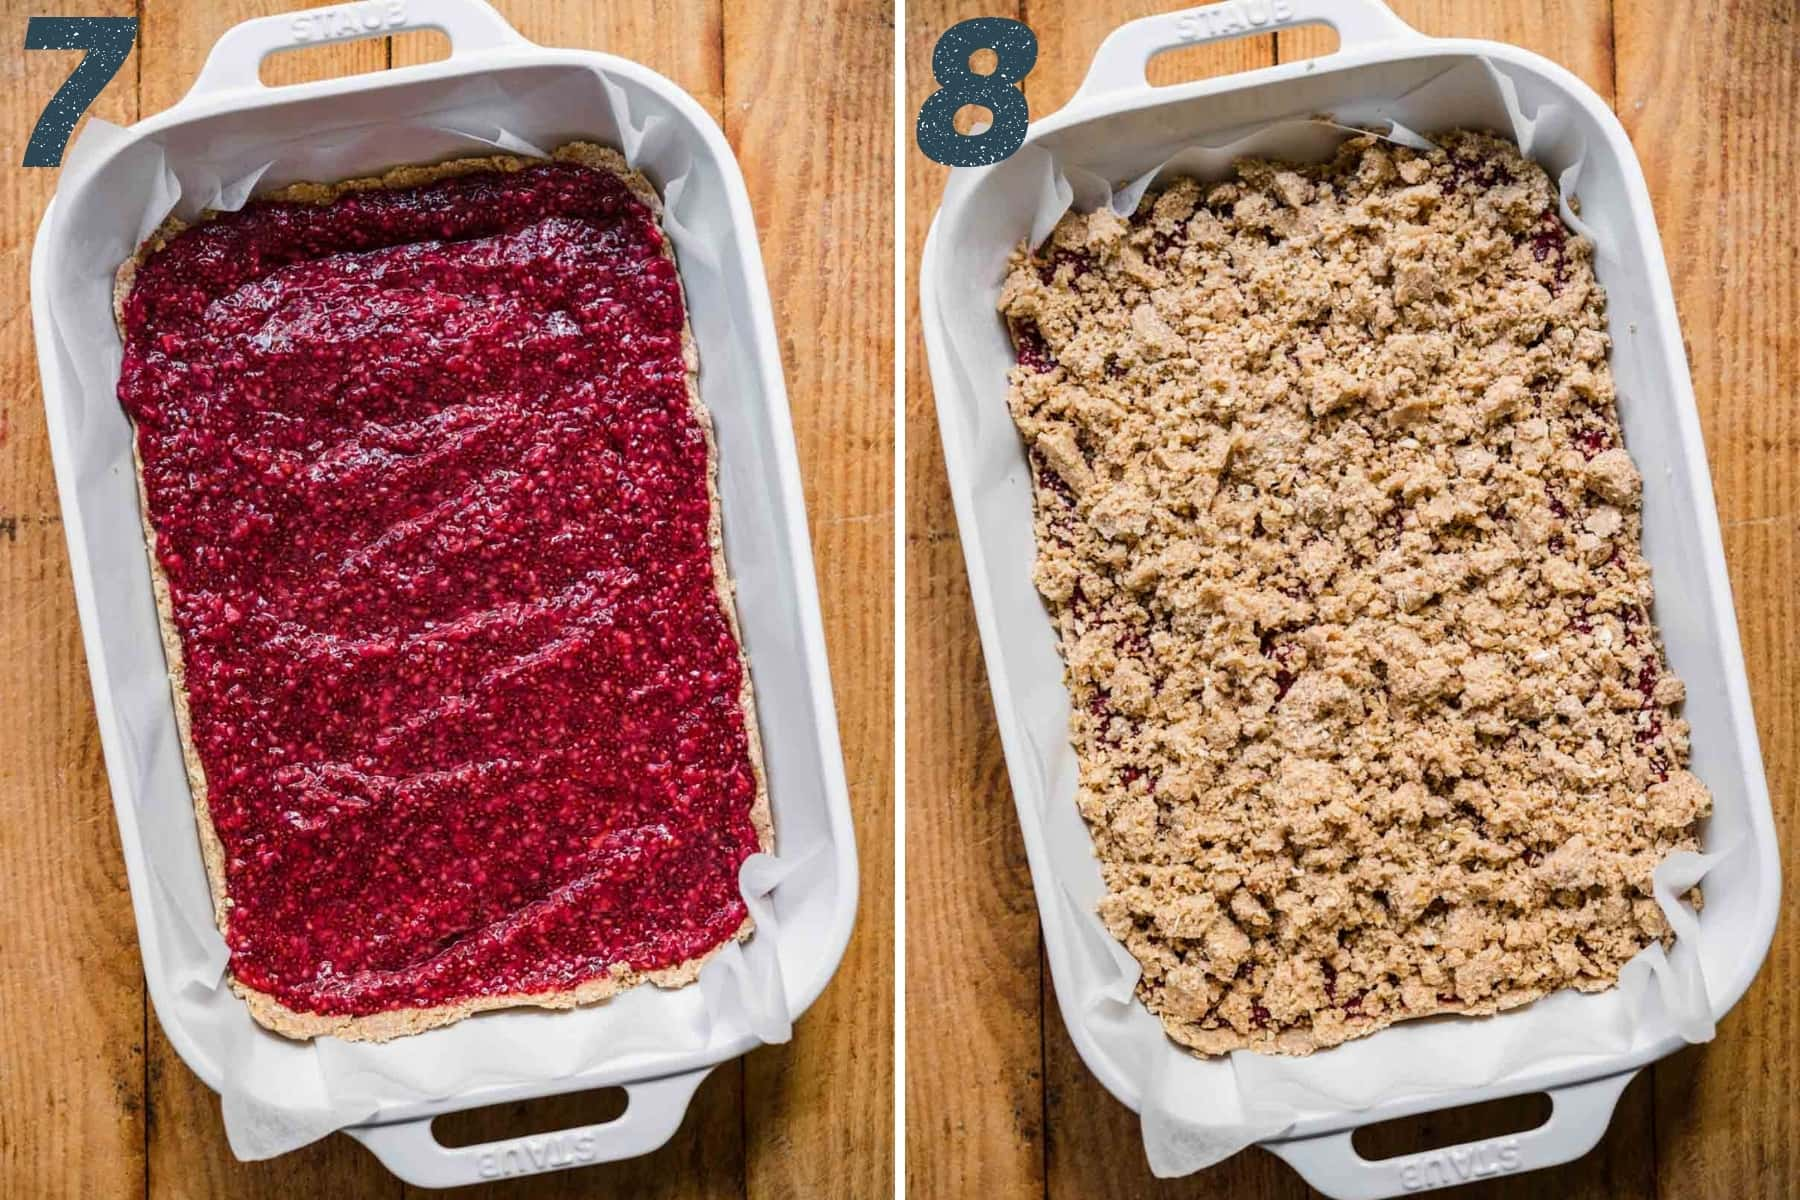 before and after topping raspberry jam with oat crumble in pan.